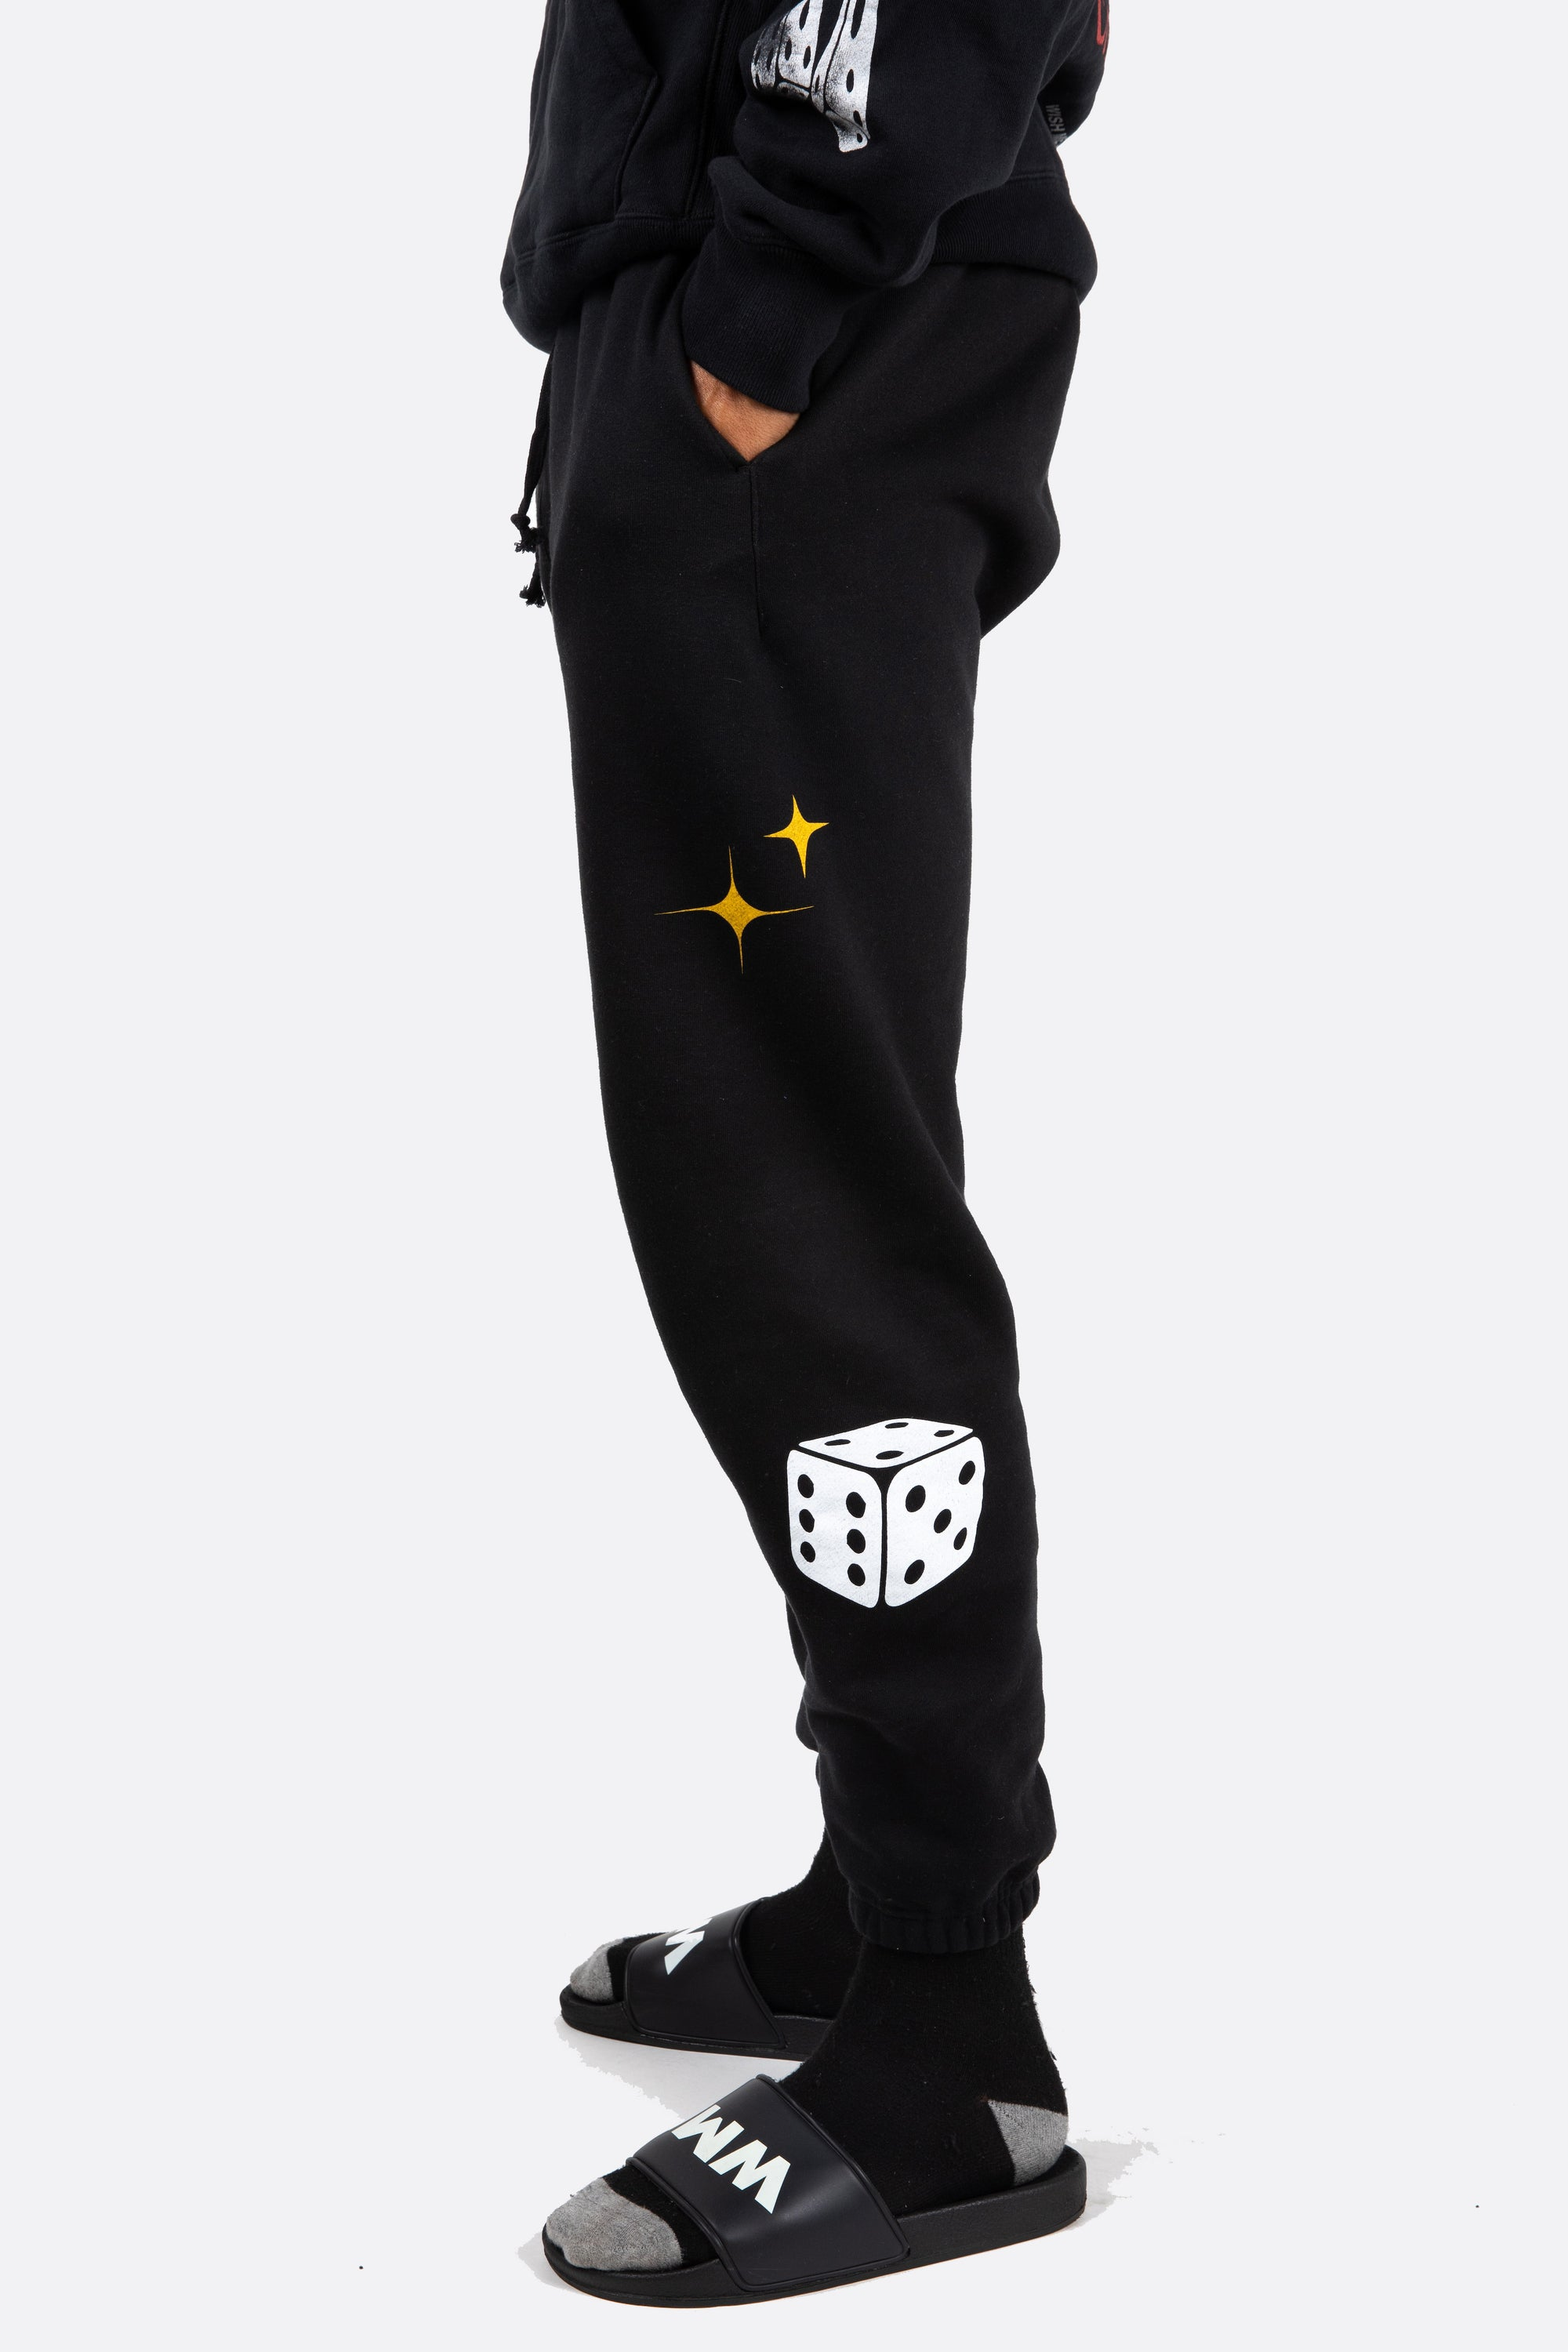 Roll The Dice sweats